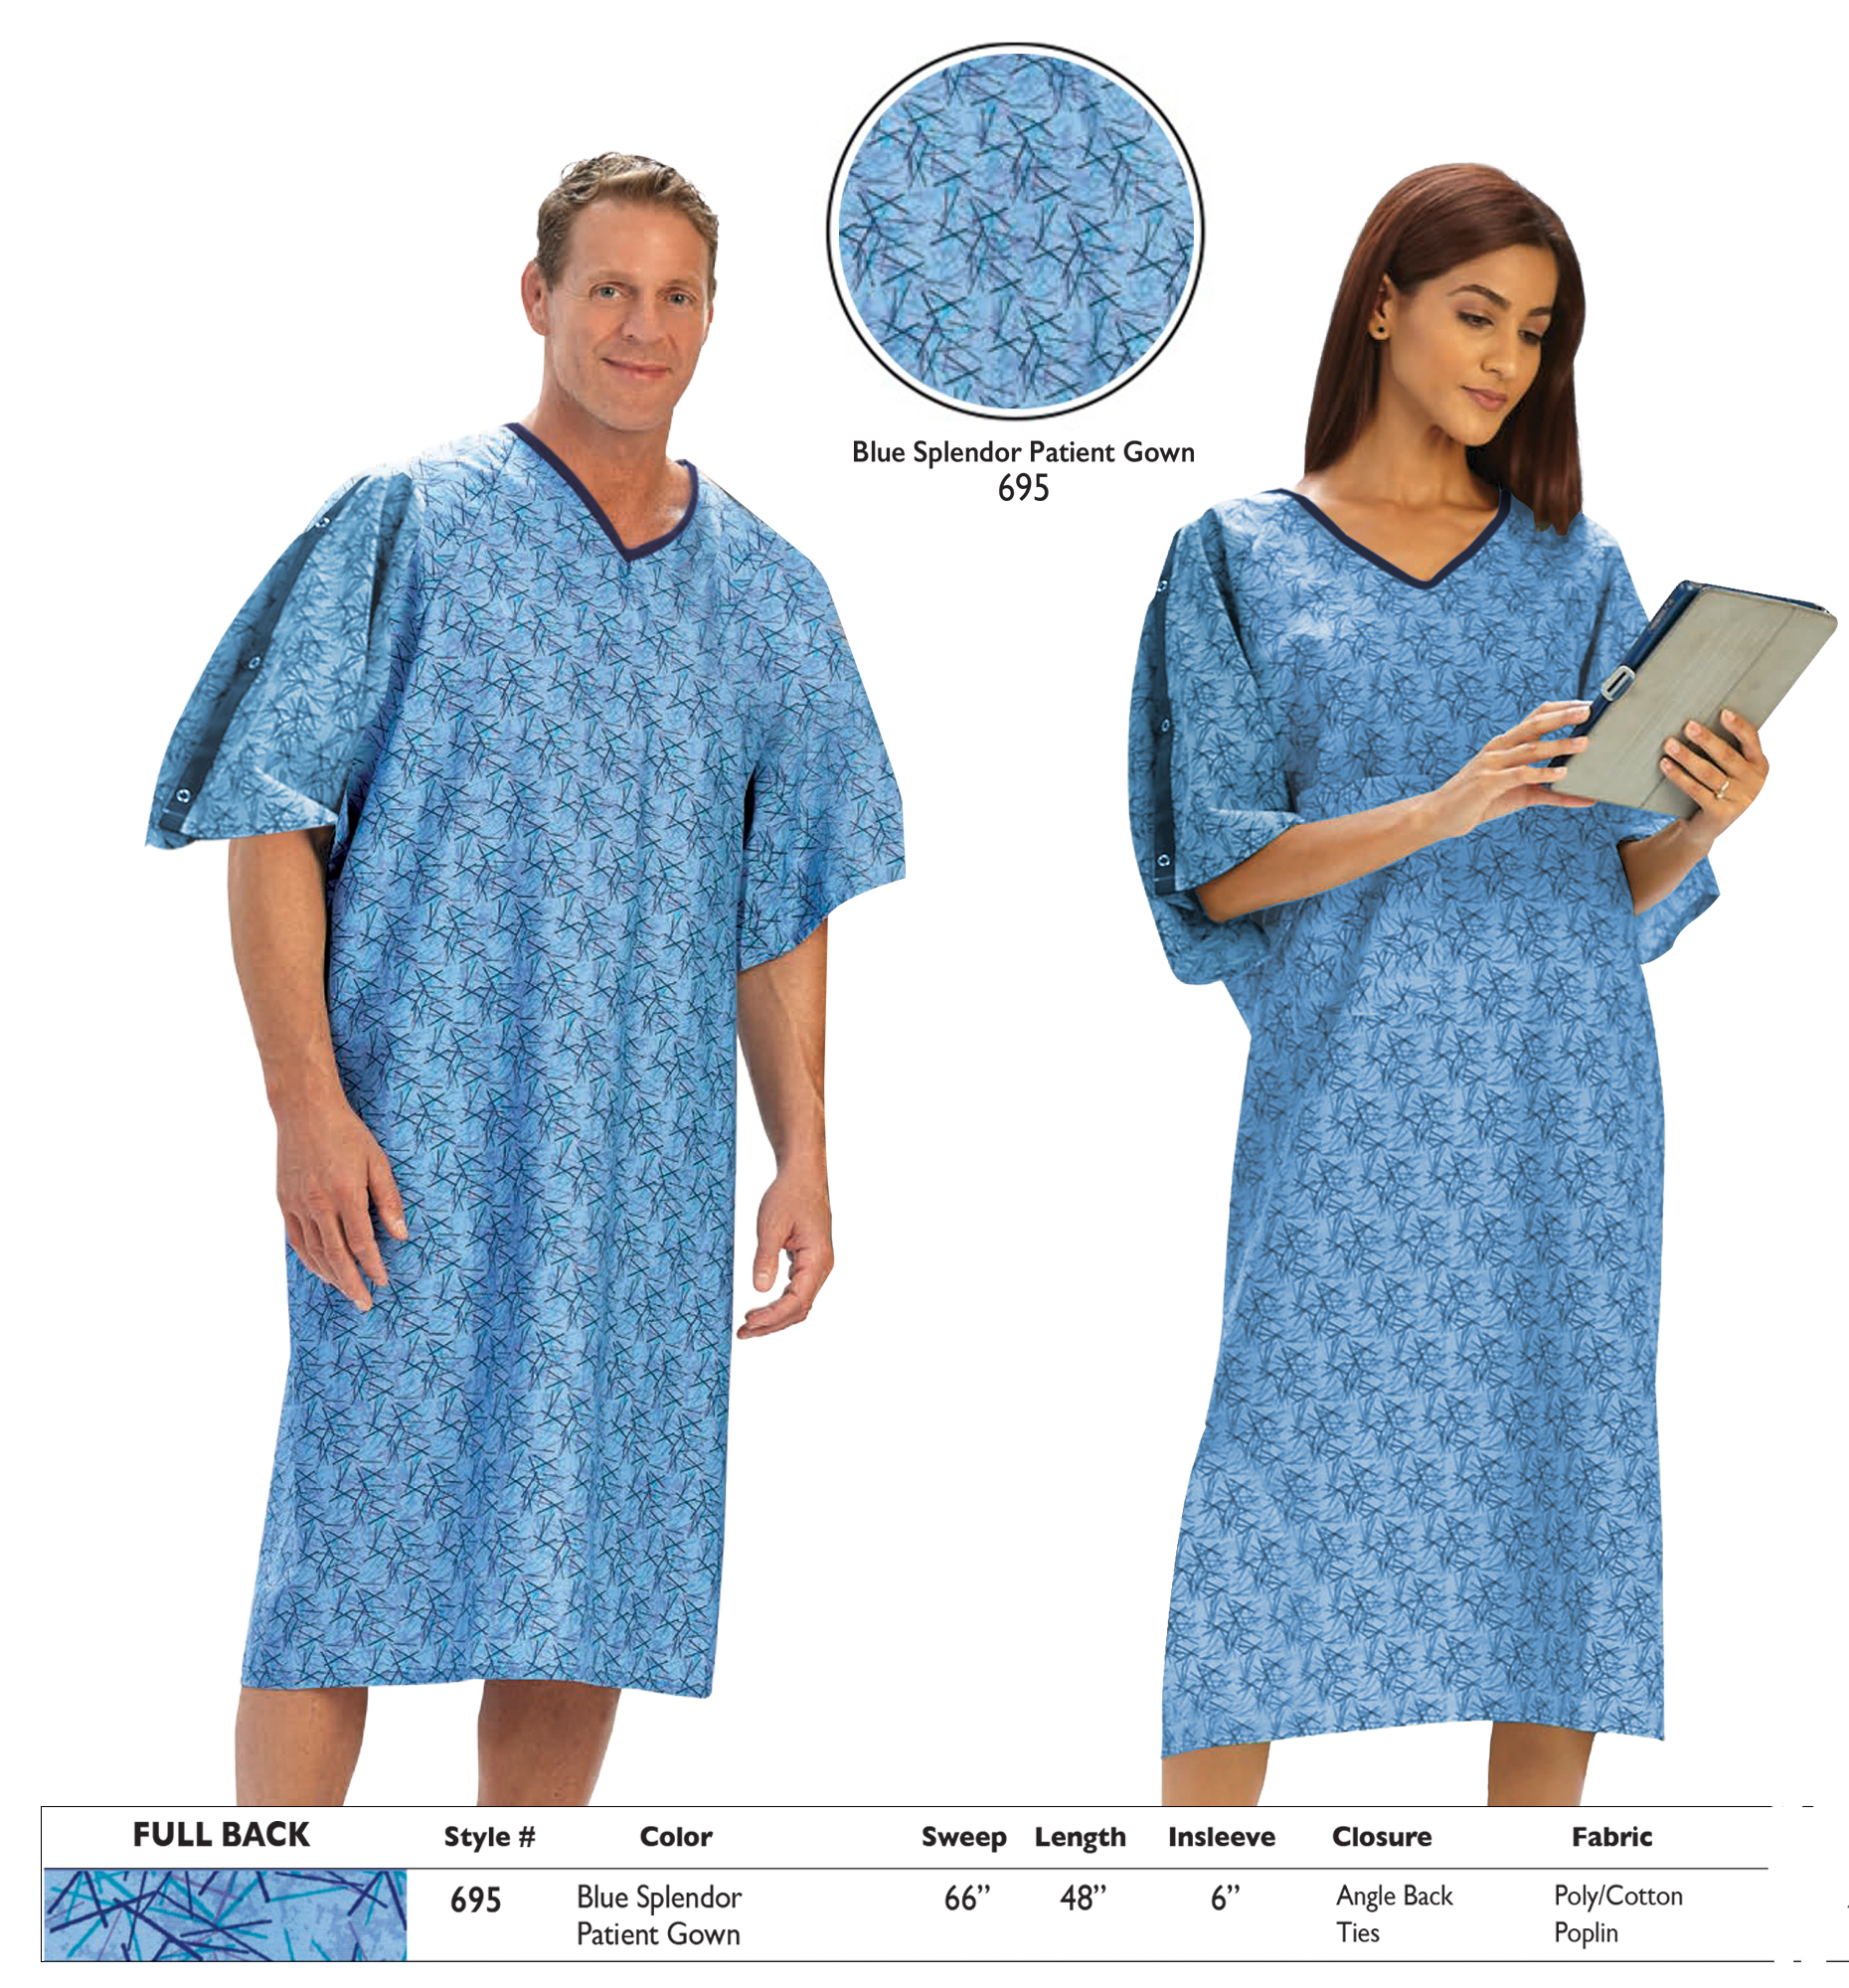 Personal Touch Unisex Hospital Gowns 1 DZ You Choose Size And Colors 8fa8e8999